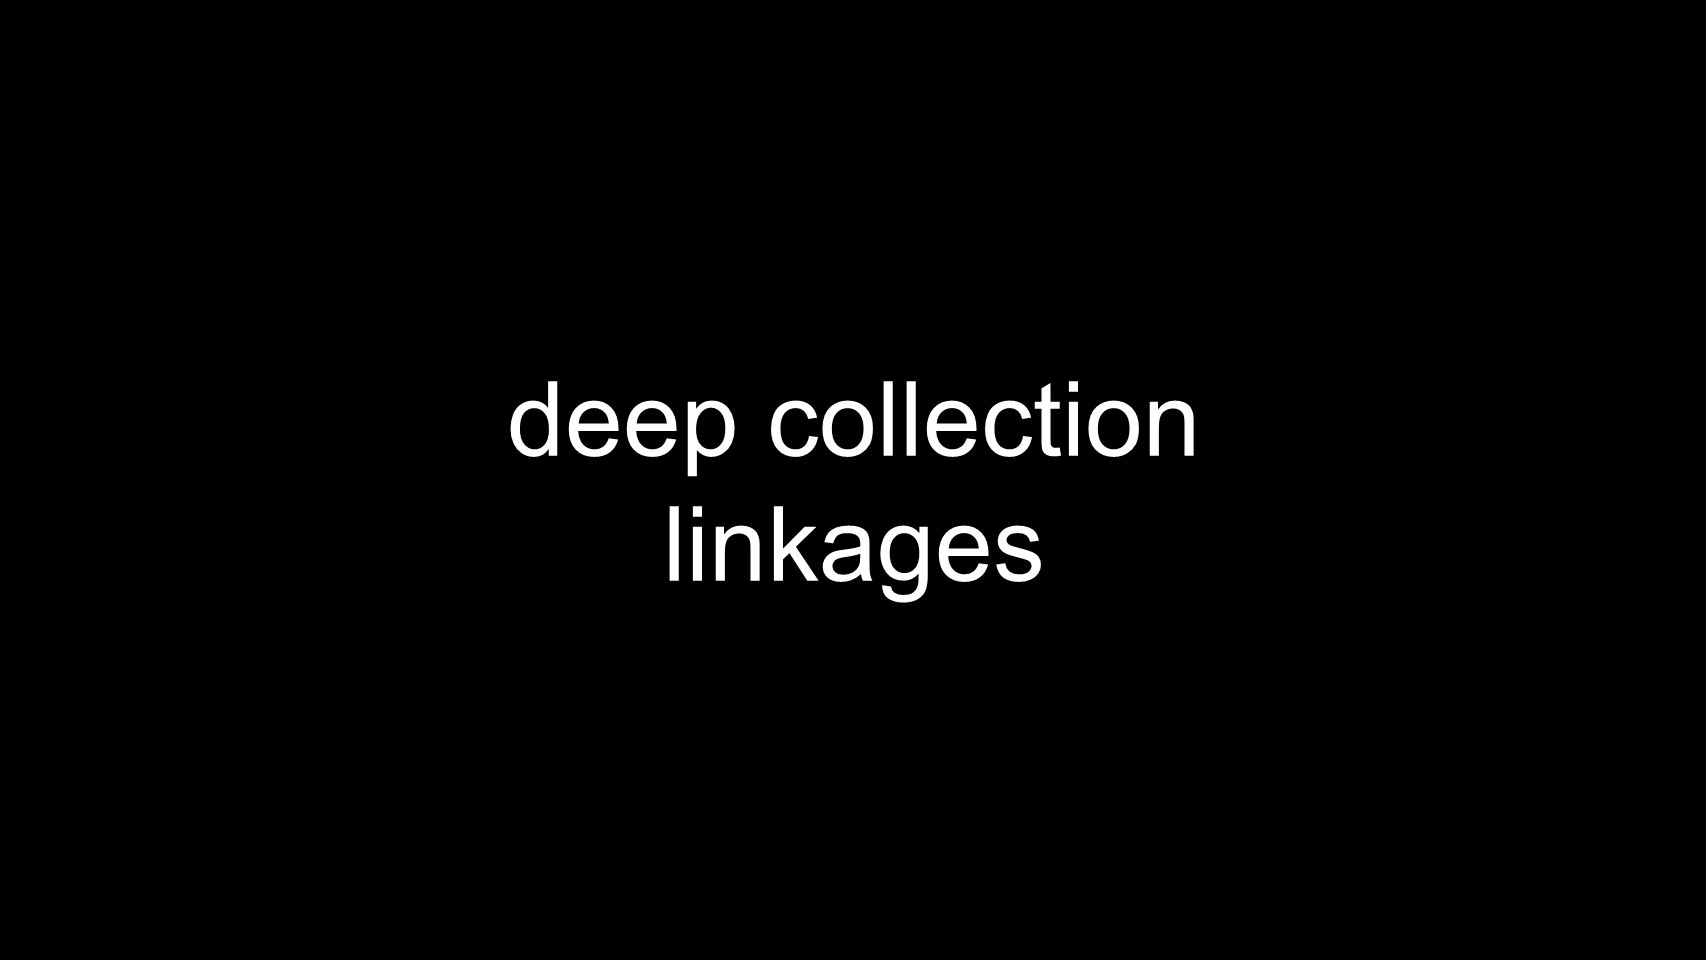 deep collection linkages